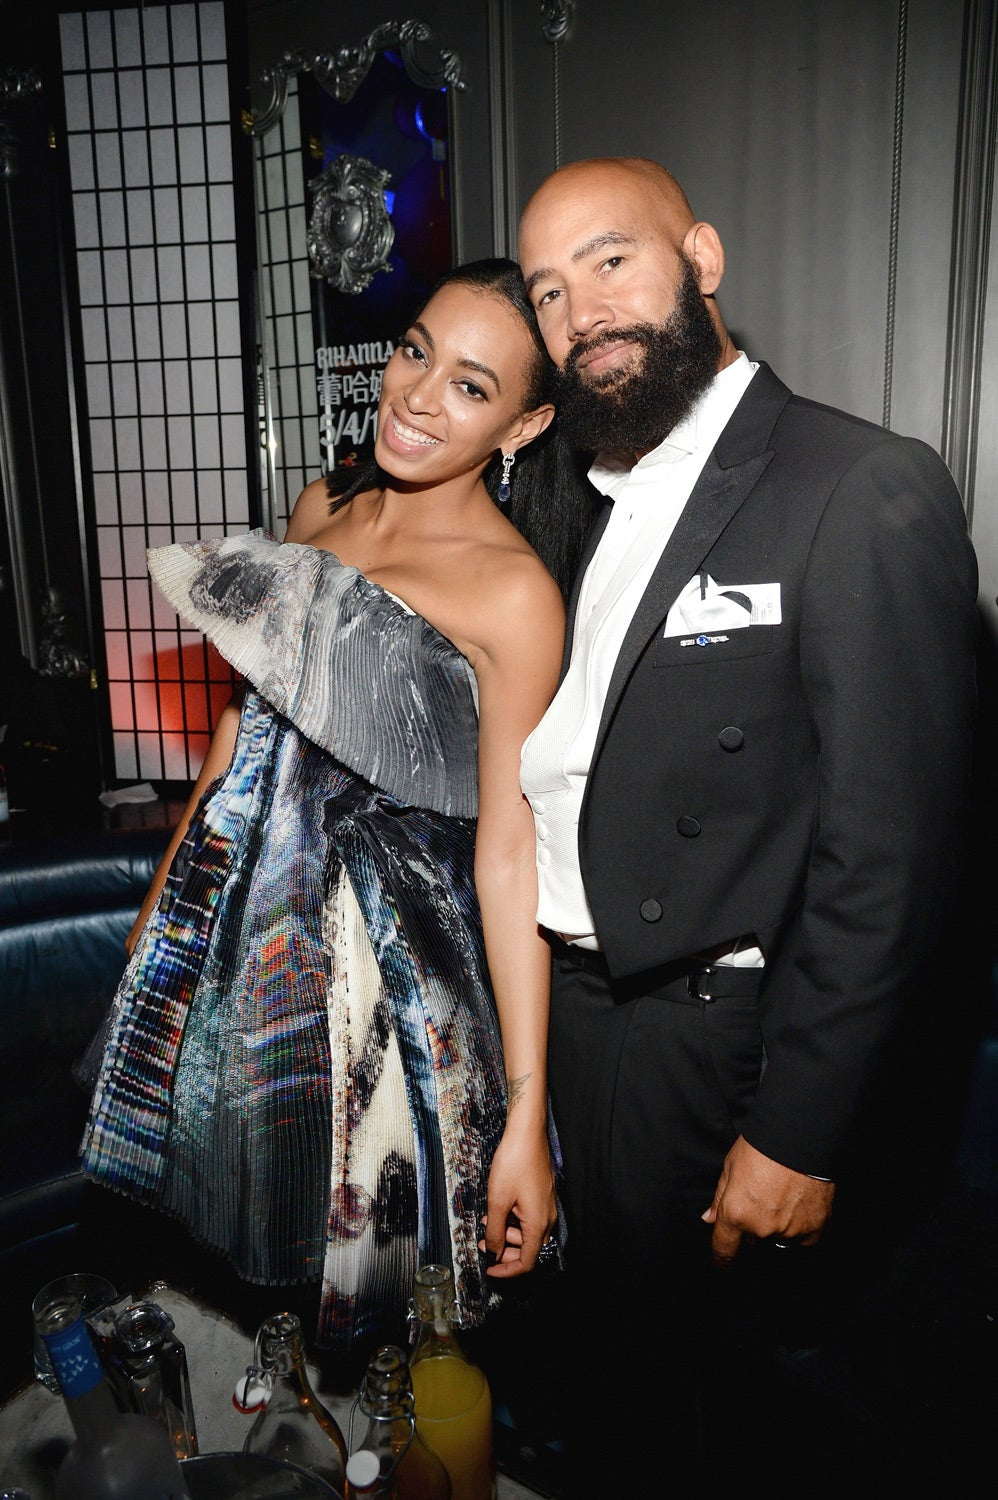 solange and her husband alan ferguson last fought about to black